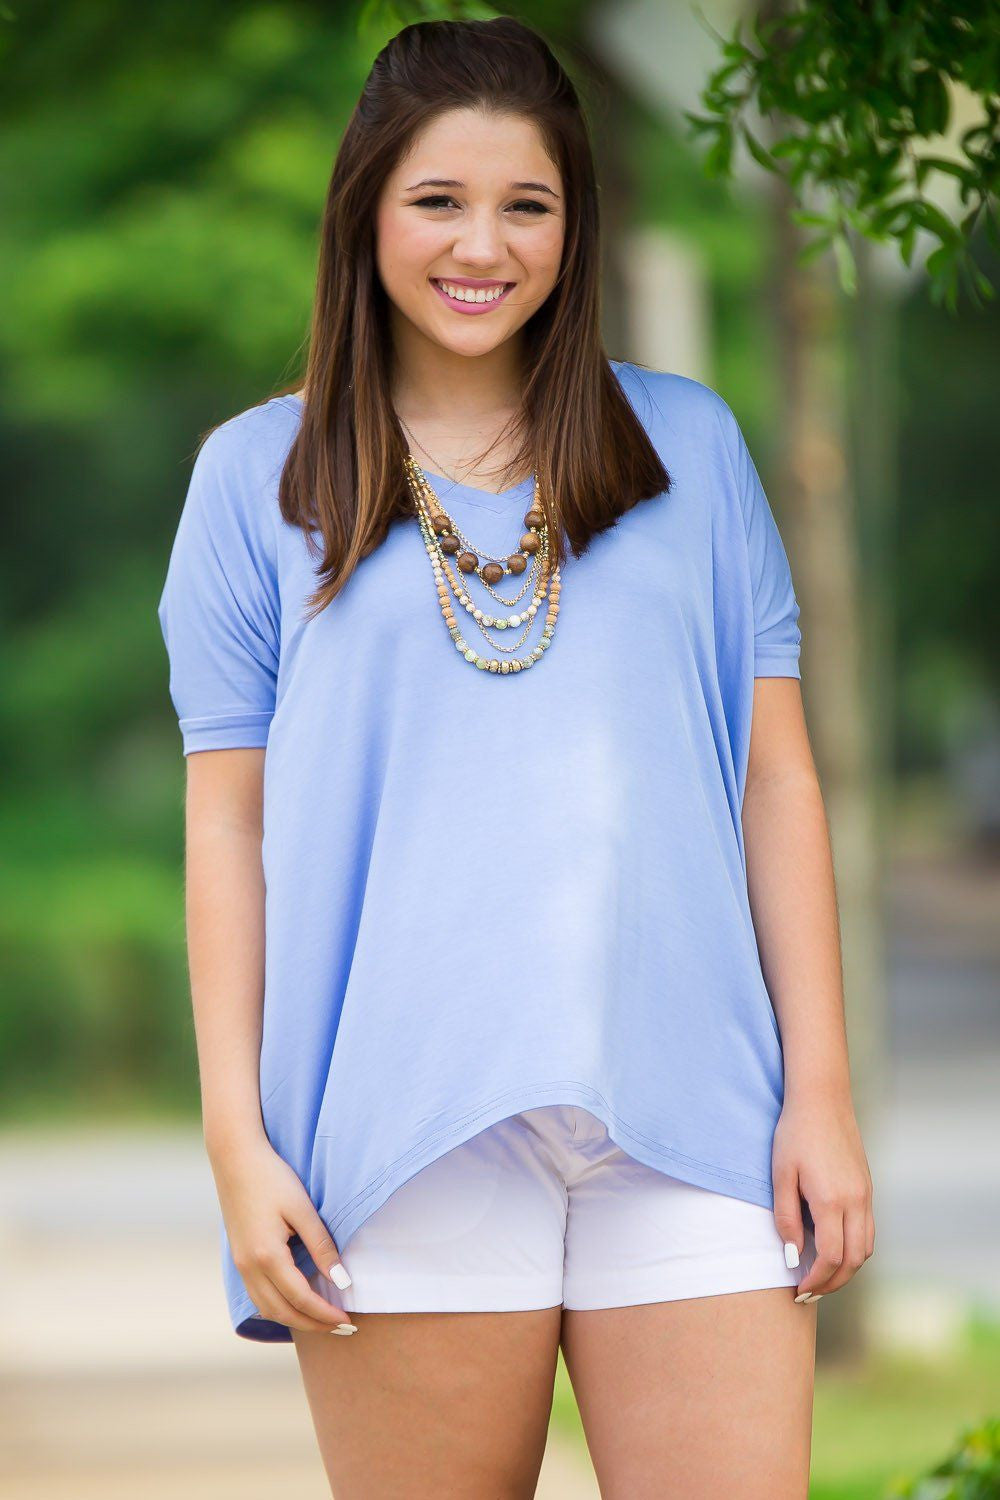 Short Sleeve V-Neck Piko Top - Serenity - Piko Clothing - 1